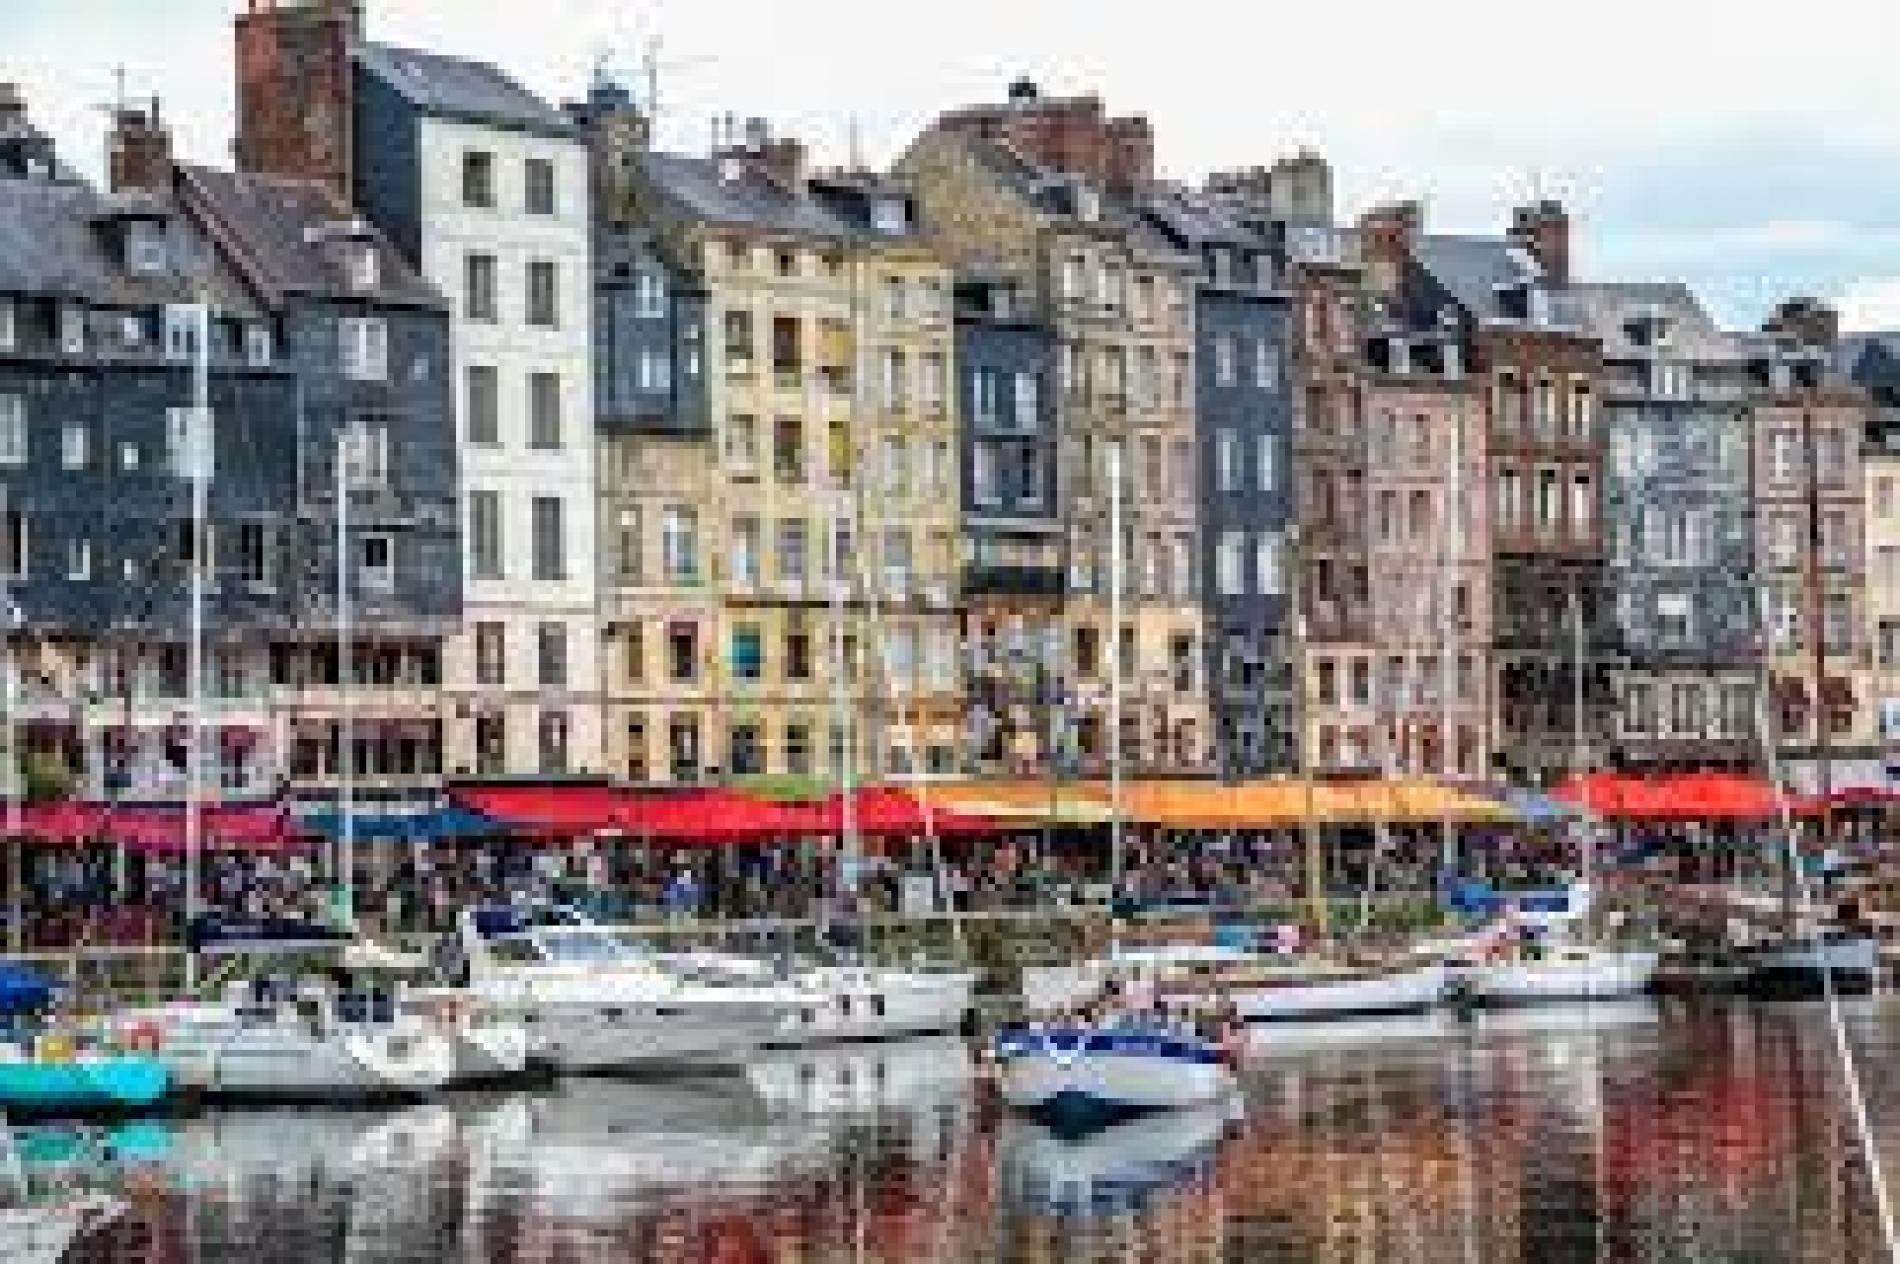 25 minutes from Honfleur